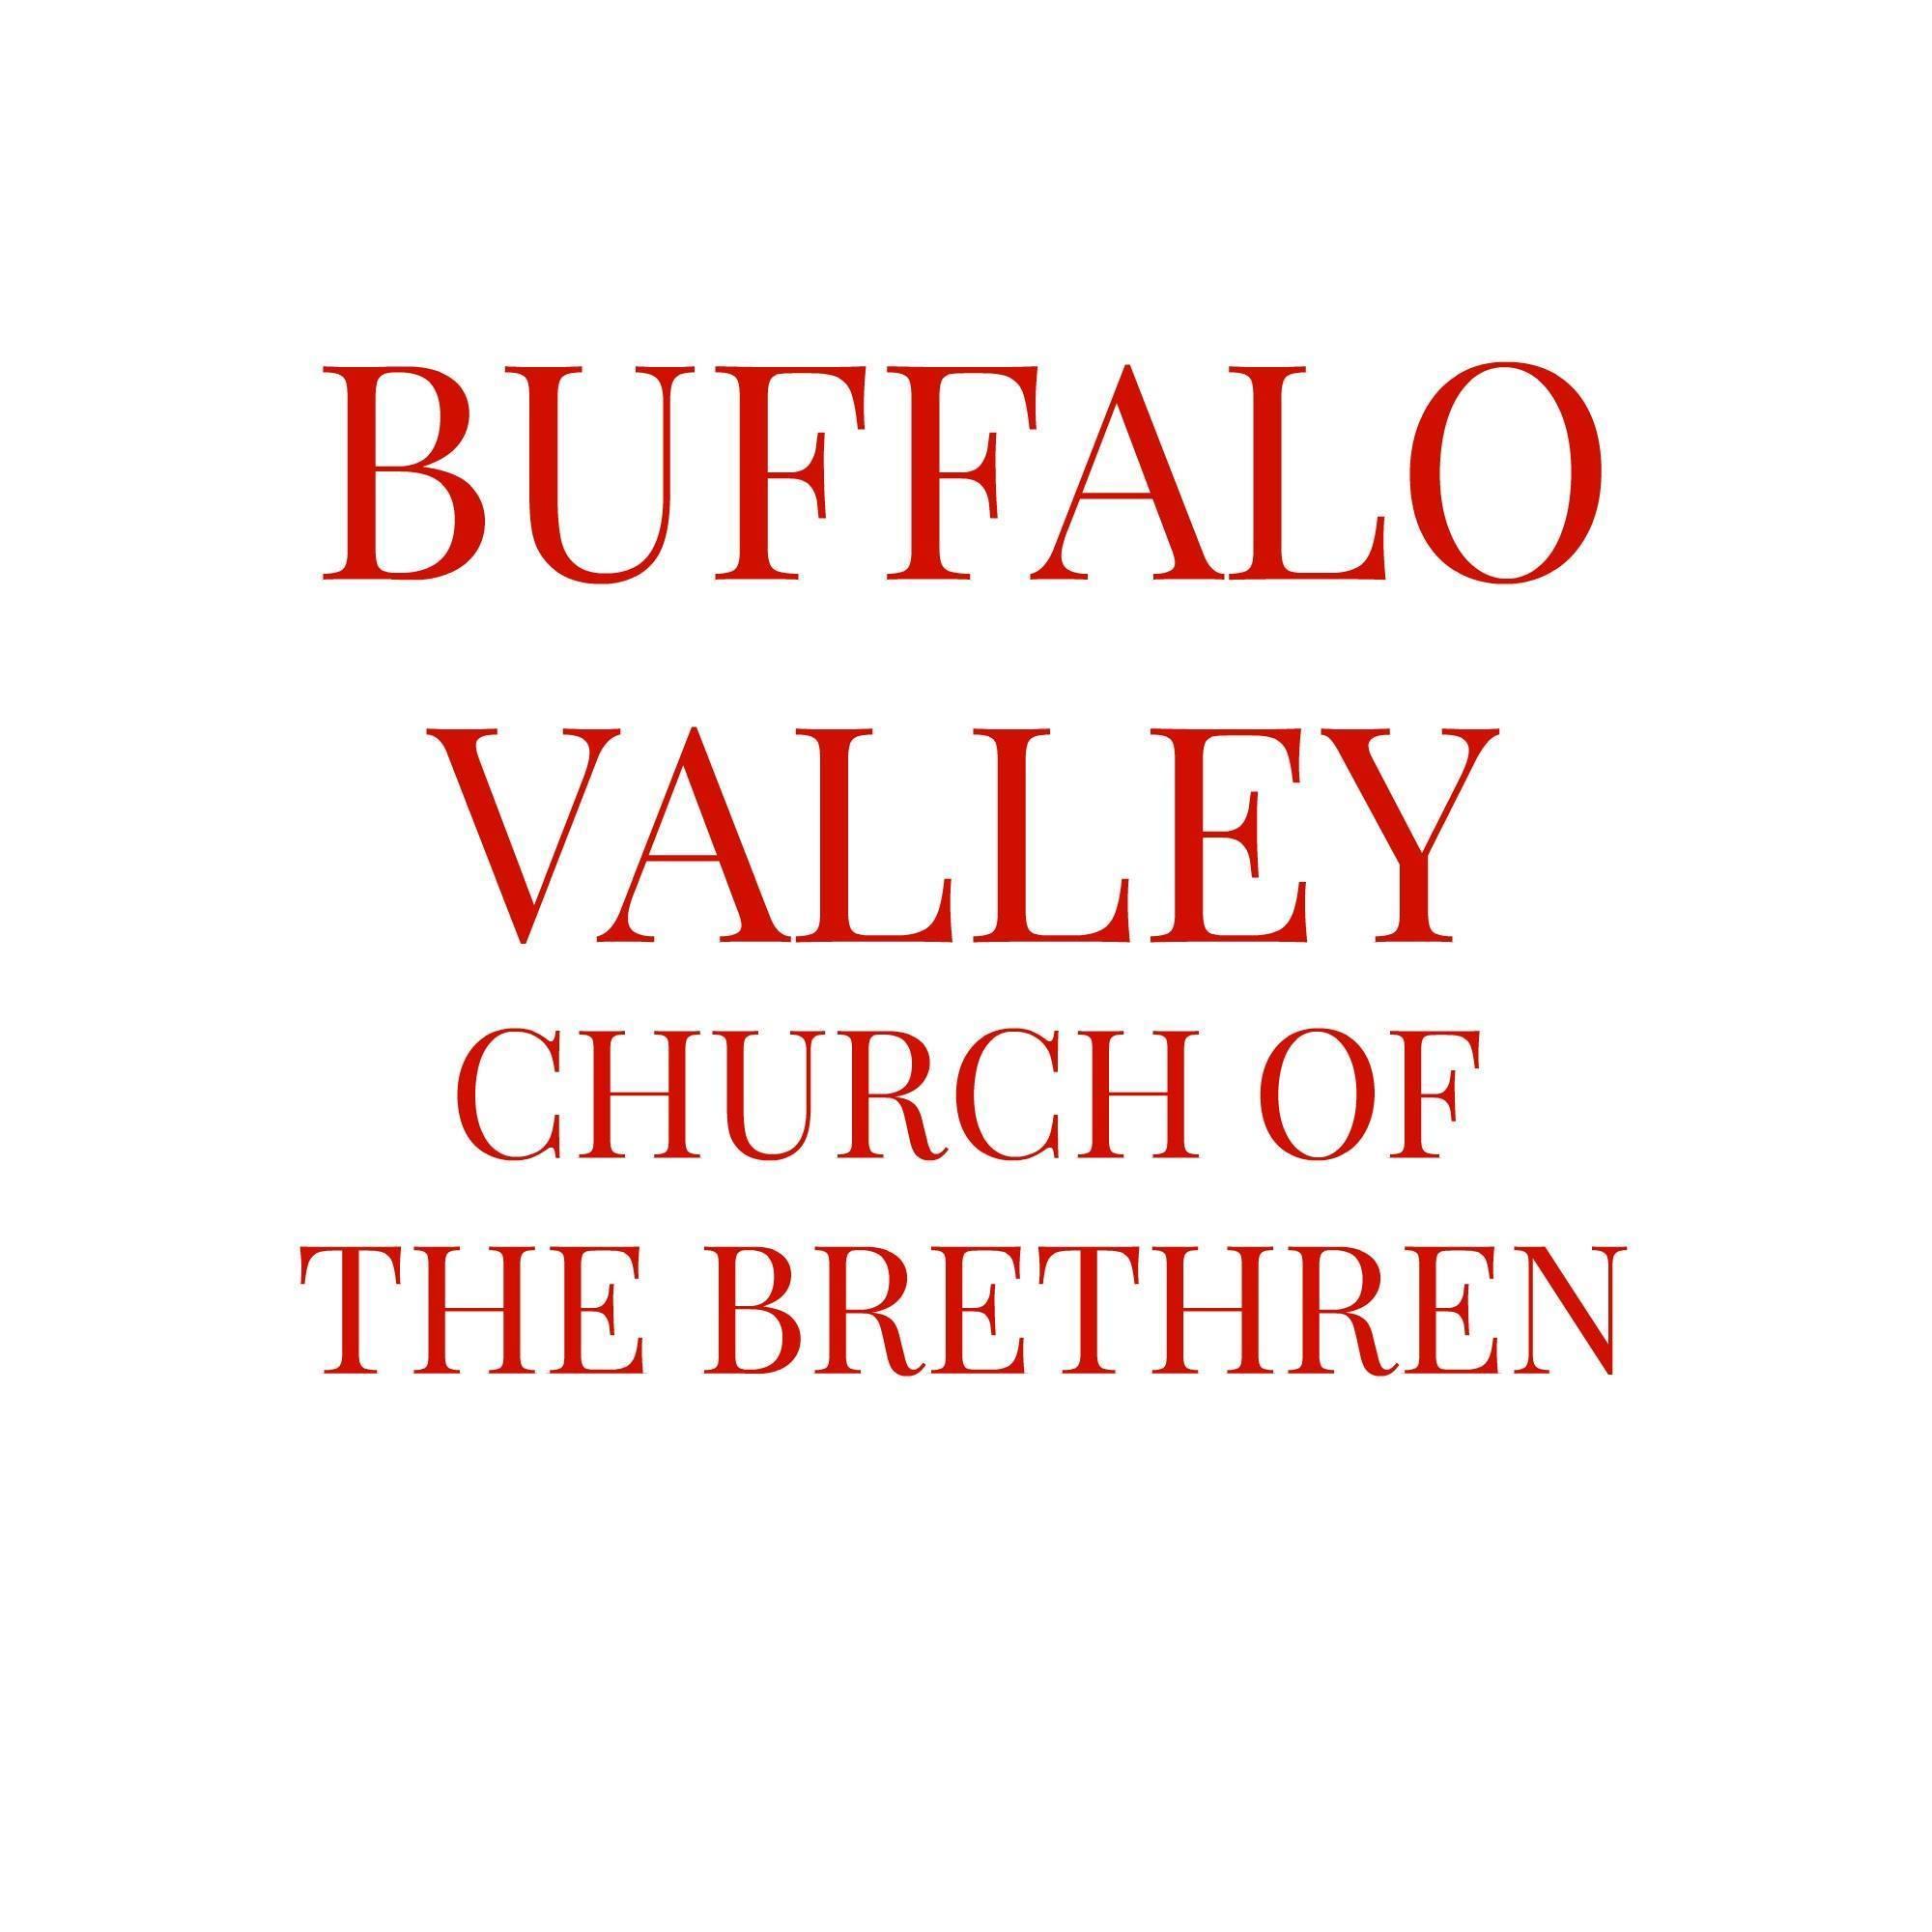 Buffalo Valley Church of the Brethren